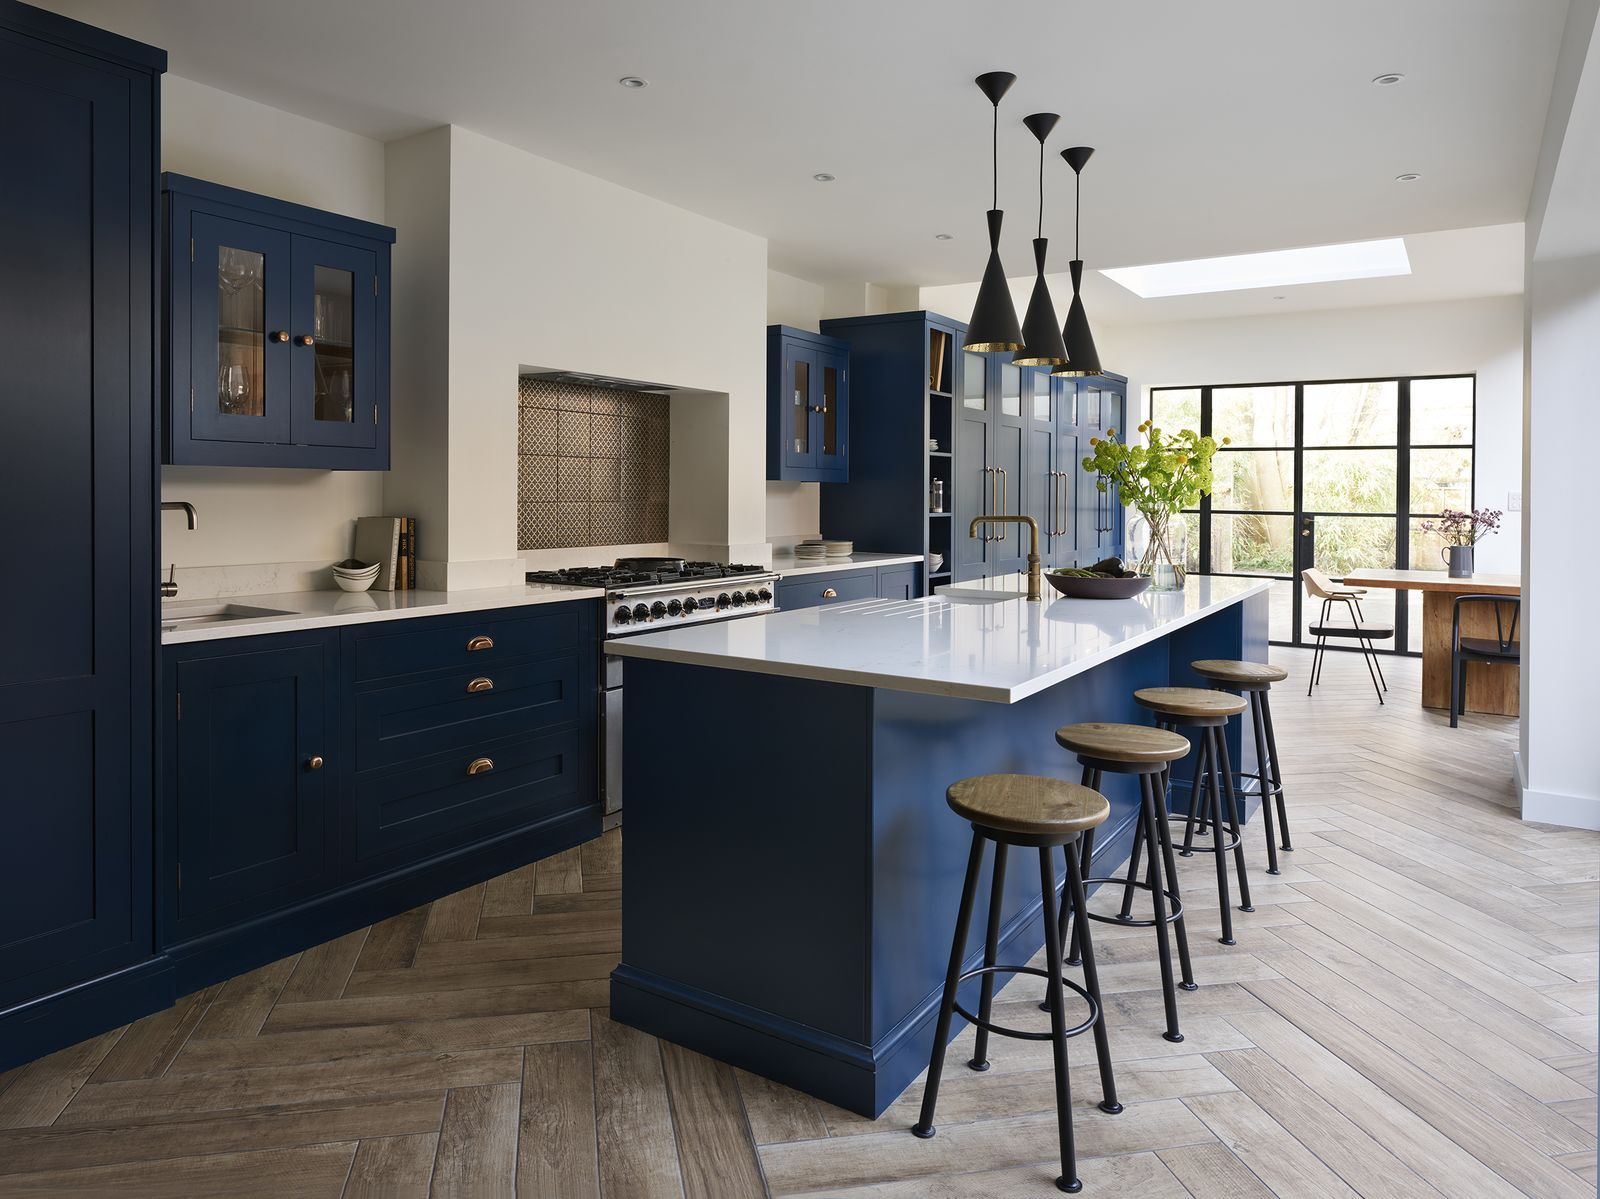 6 things to consider for a kitchen breakfast bar